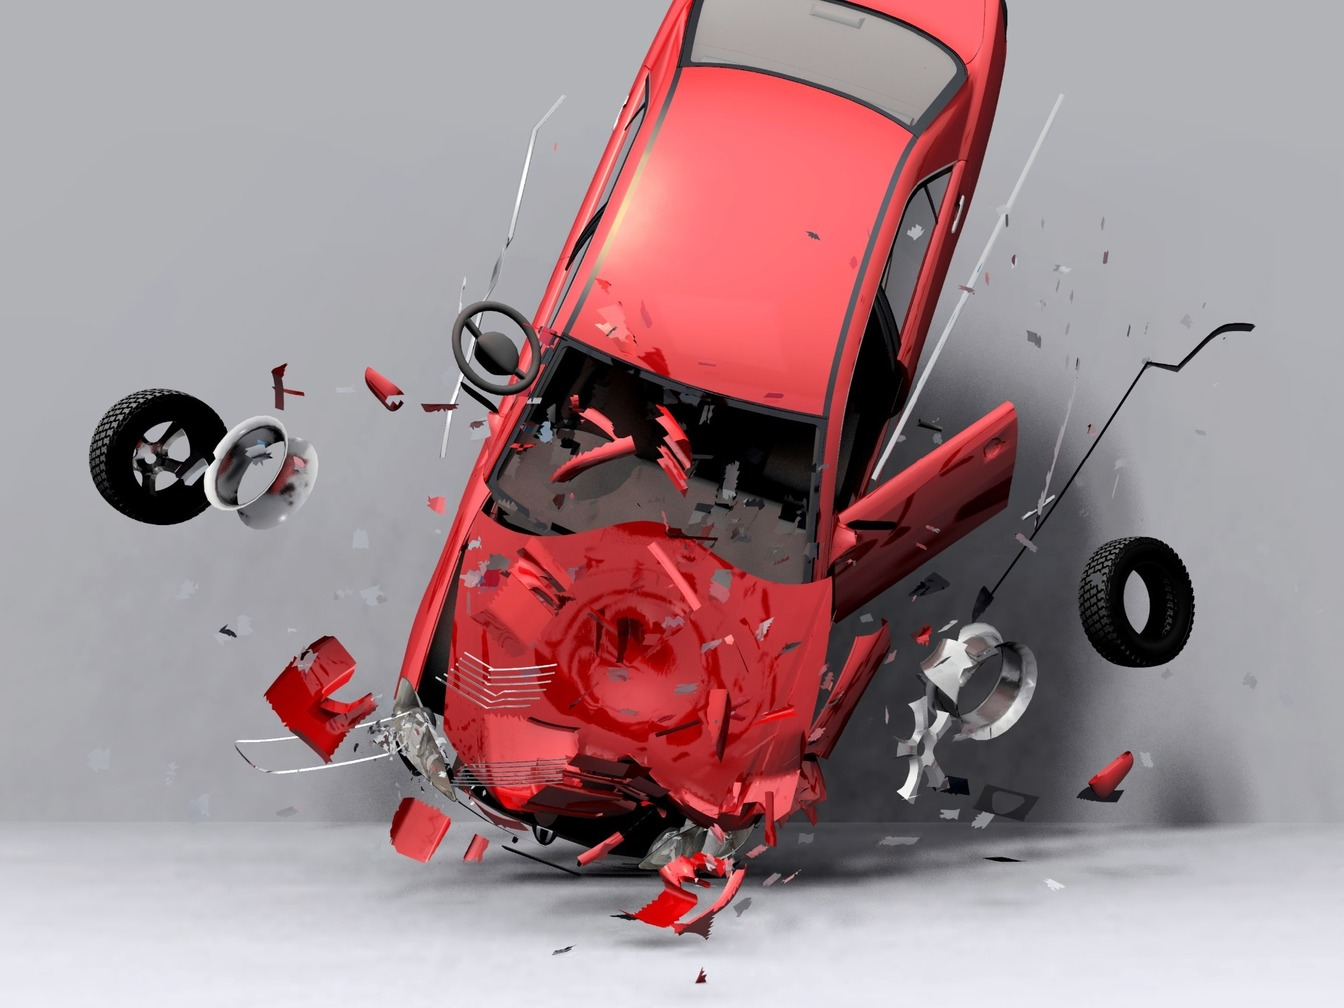 A red car which has been in an accident, smashed from the front, the tires have flown off.